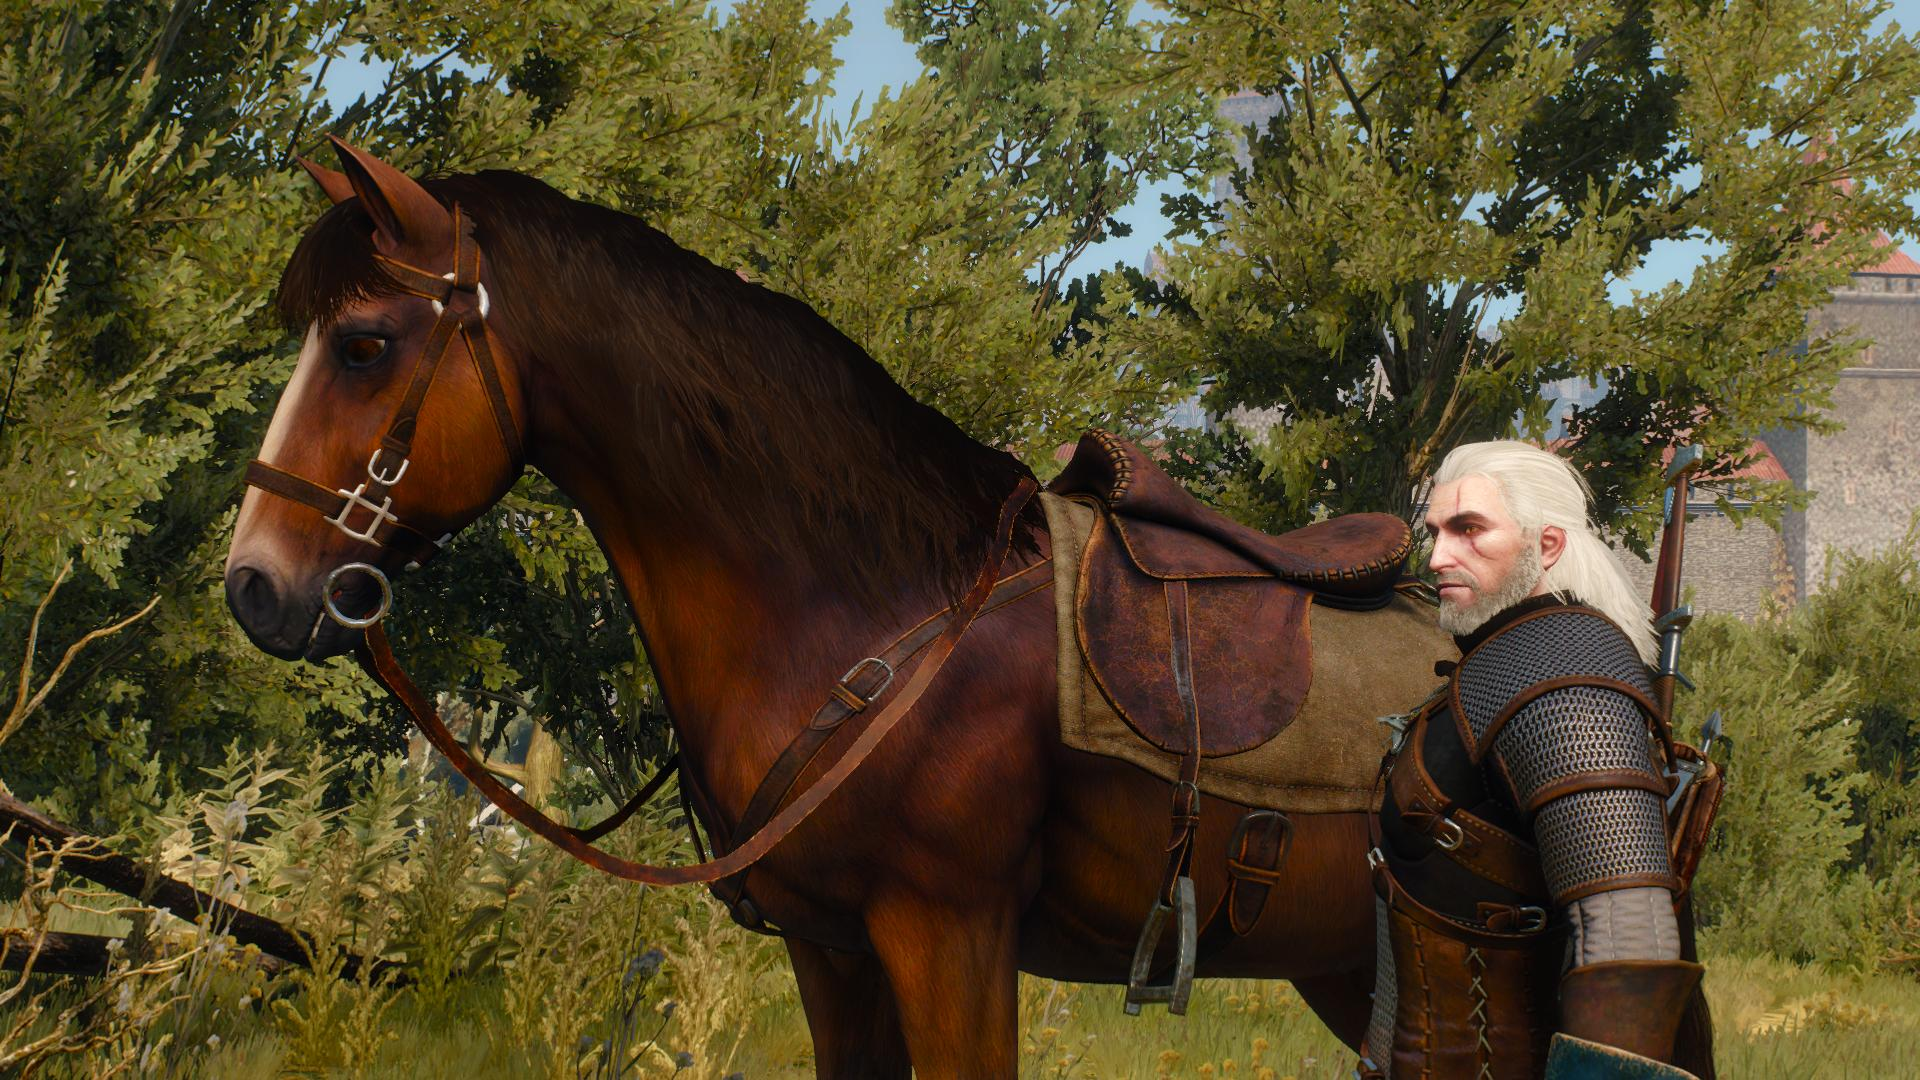 the-witcher-3-wild-hunt-nvidia-hairworks-horse.jpg